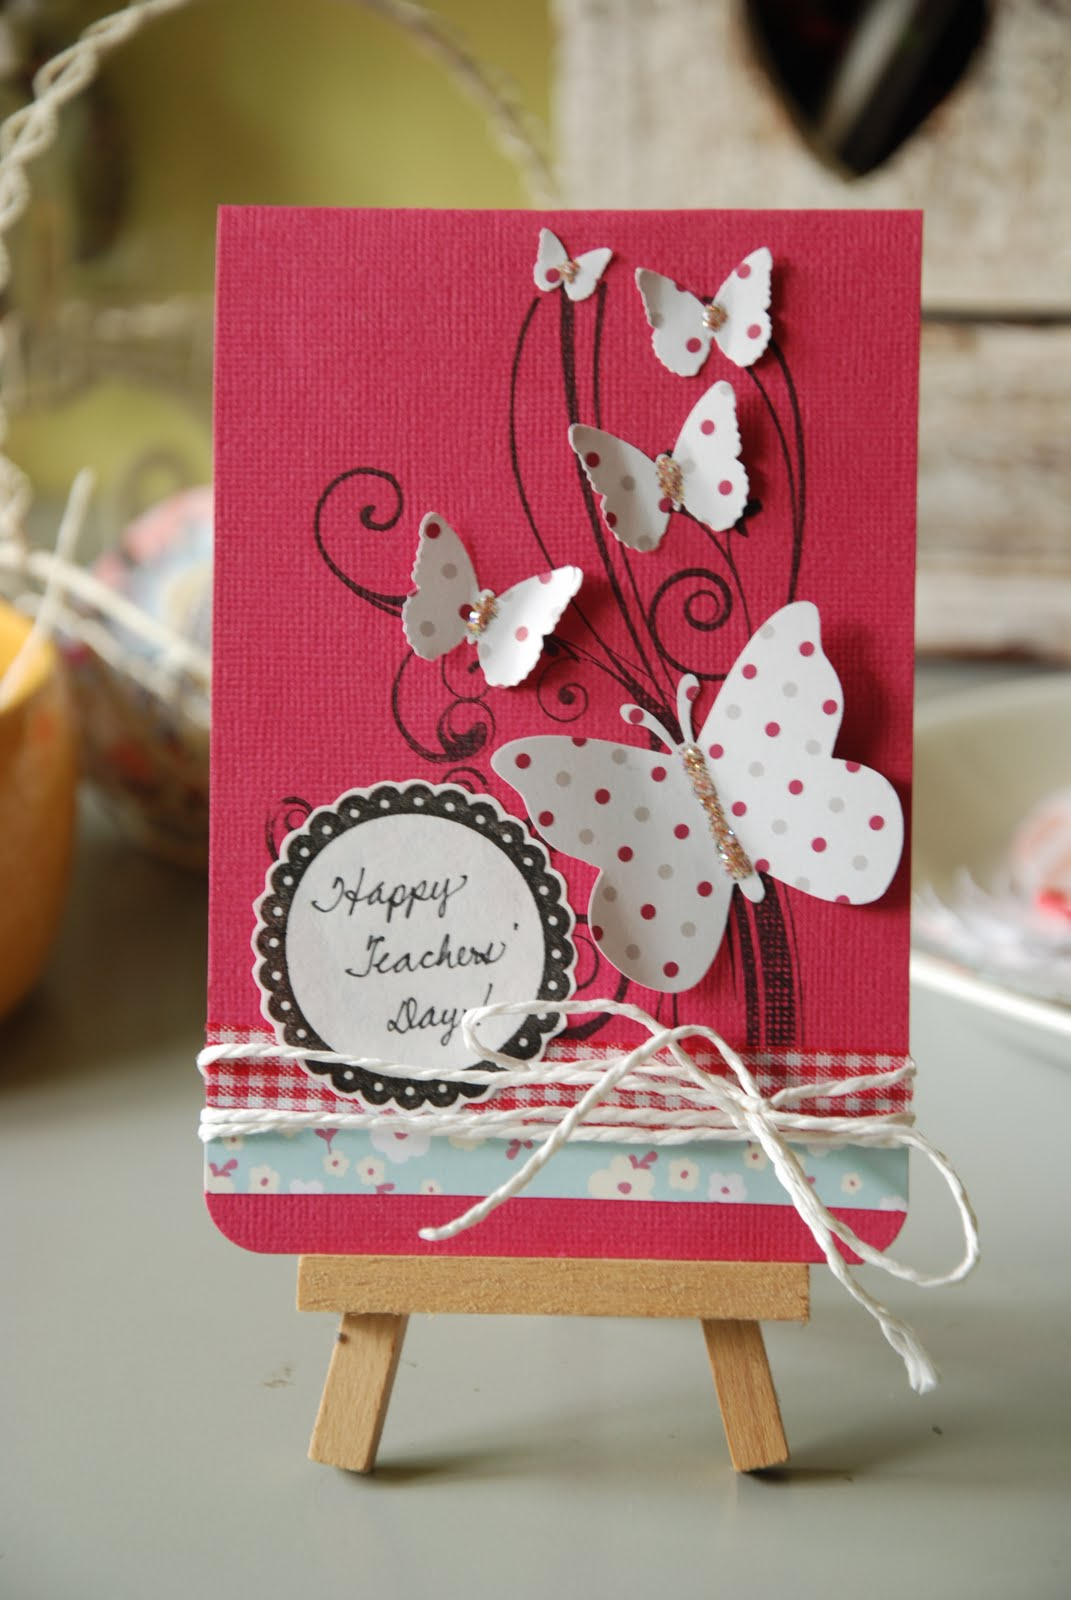 Scrappingcrazy Teachers Day Cards